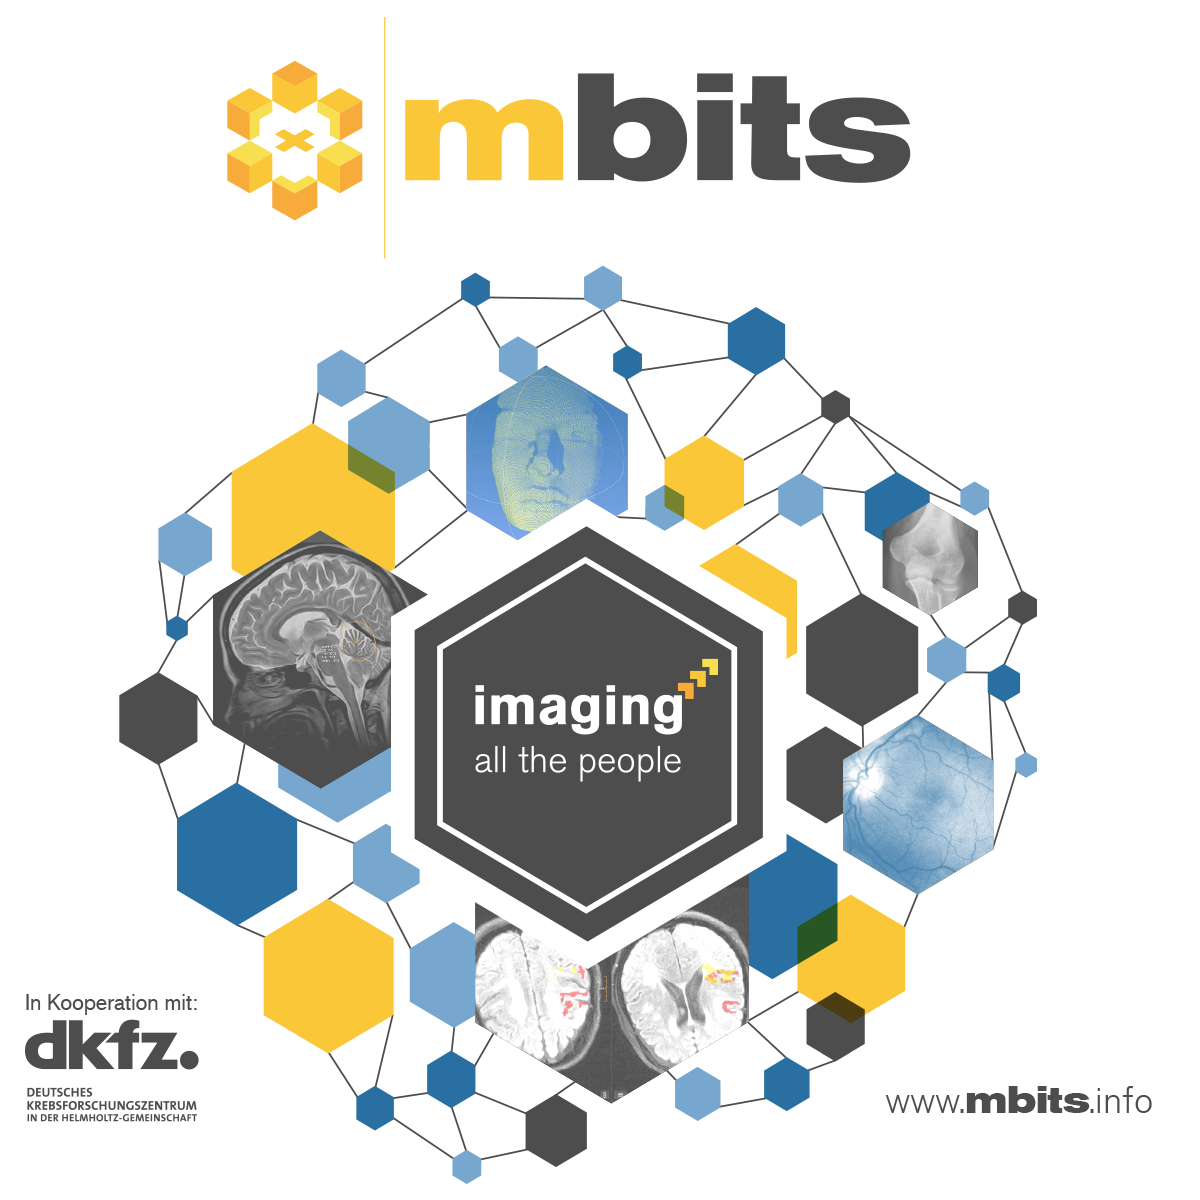 mbits imaging all the people